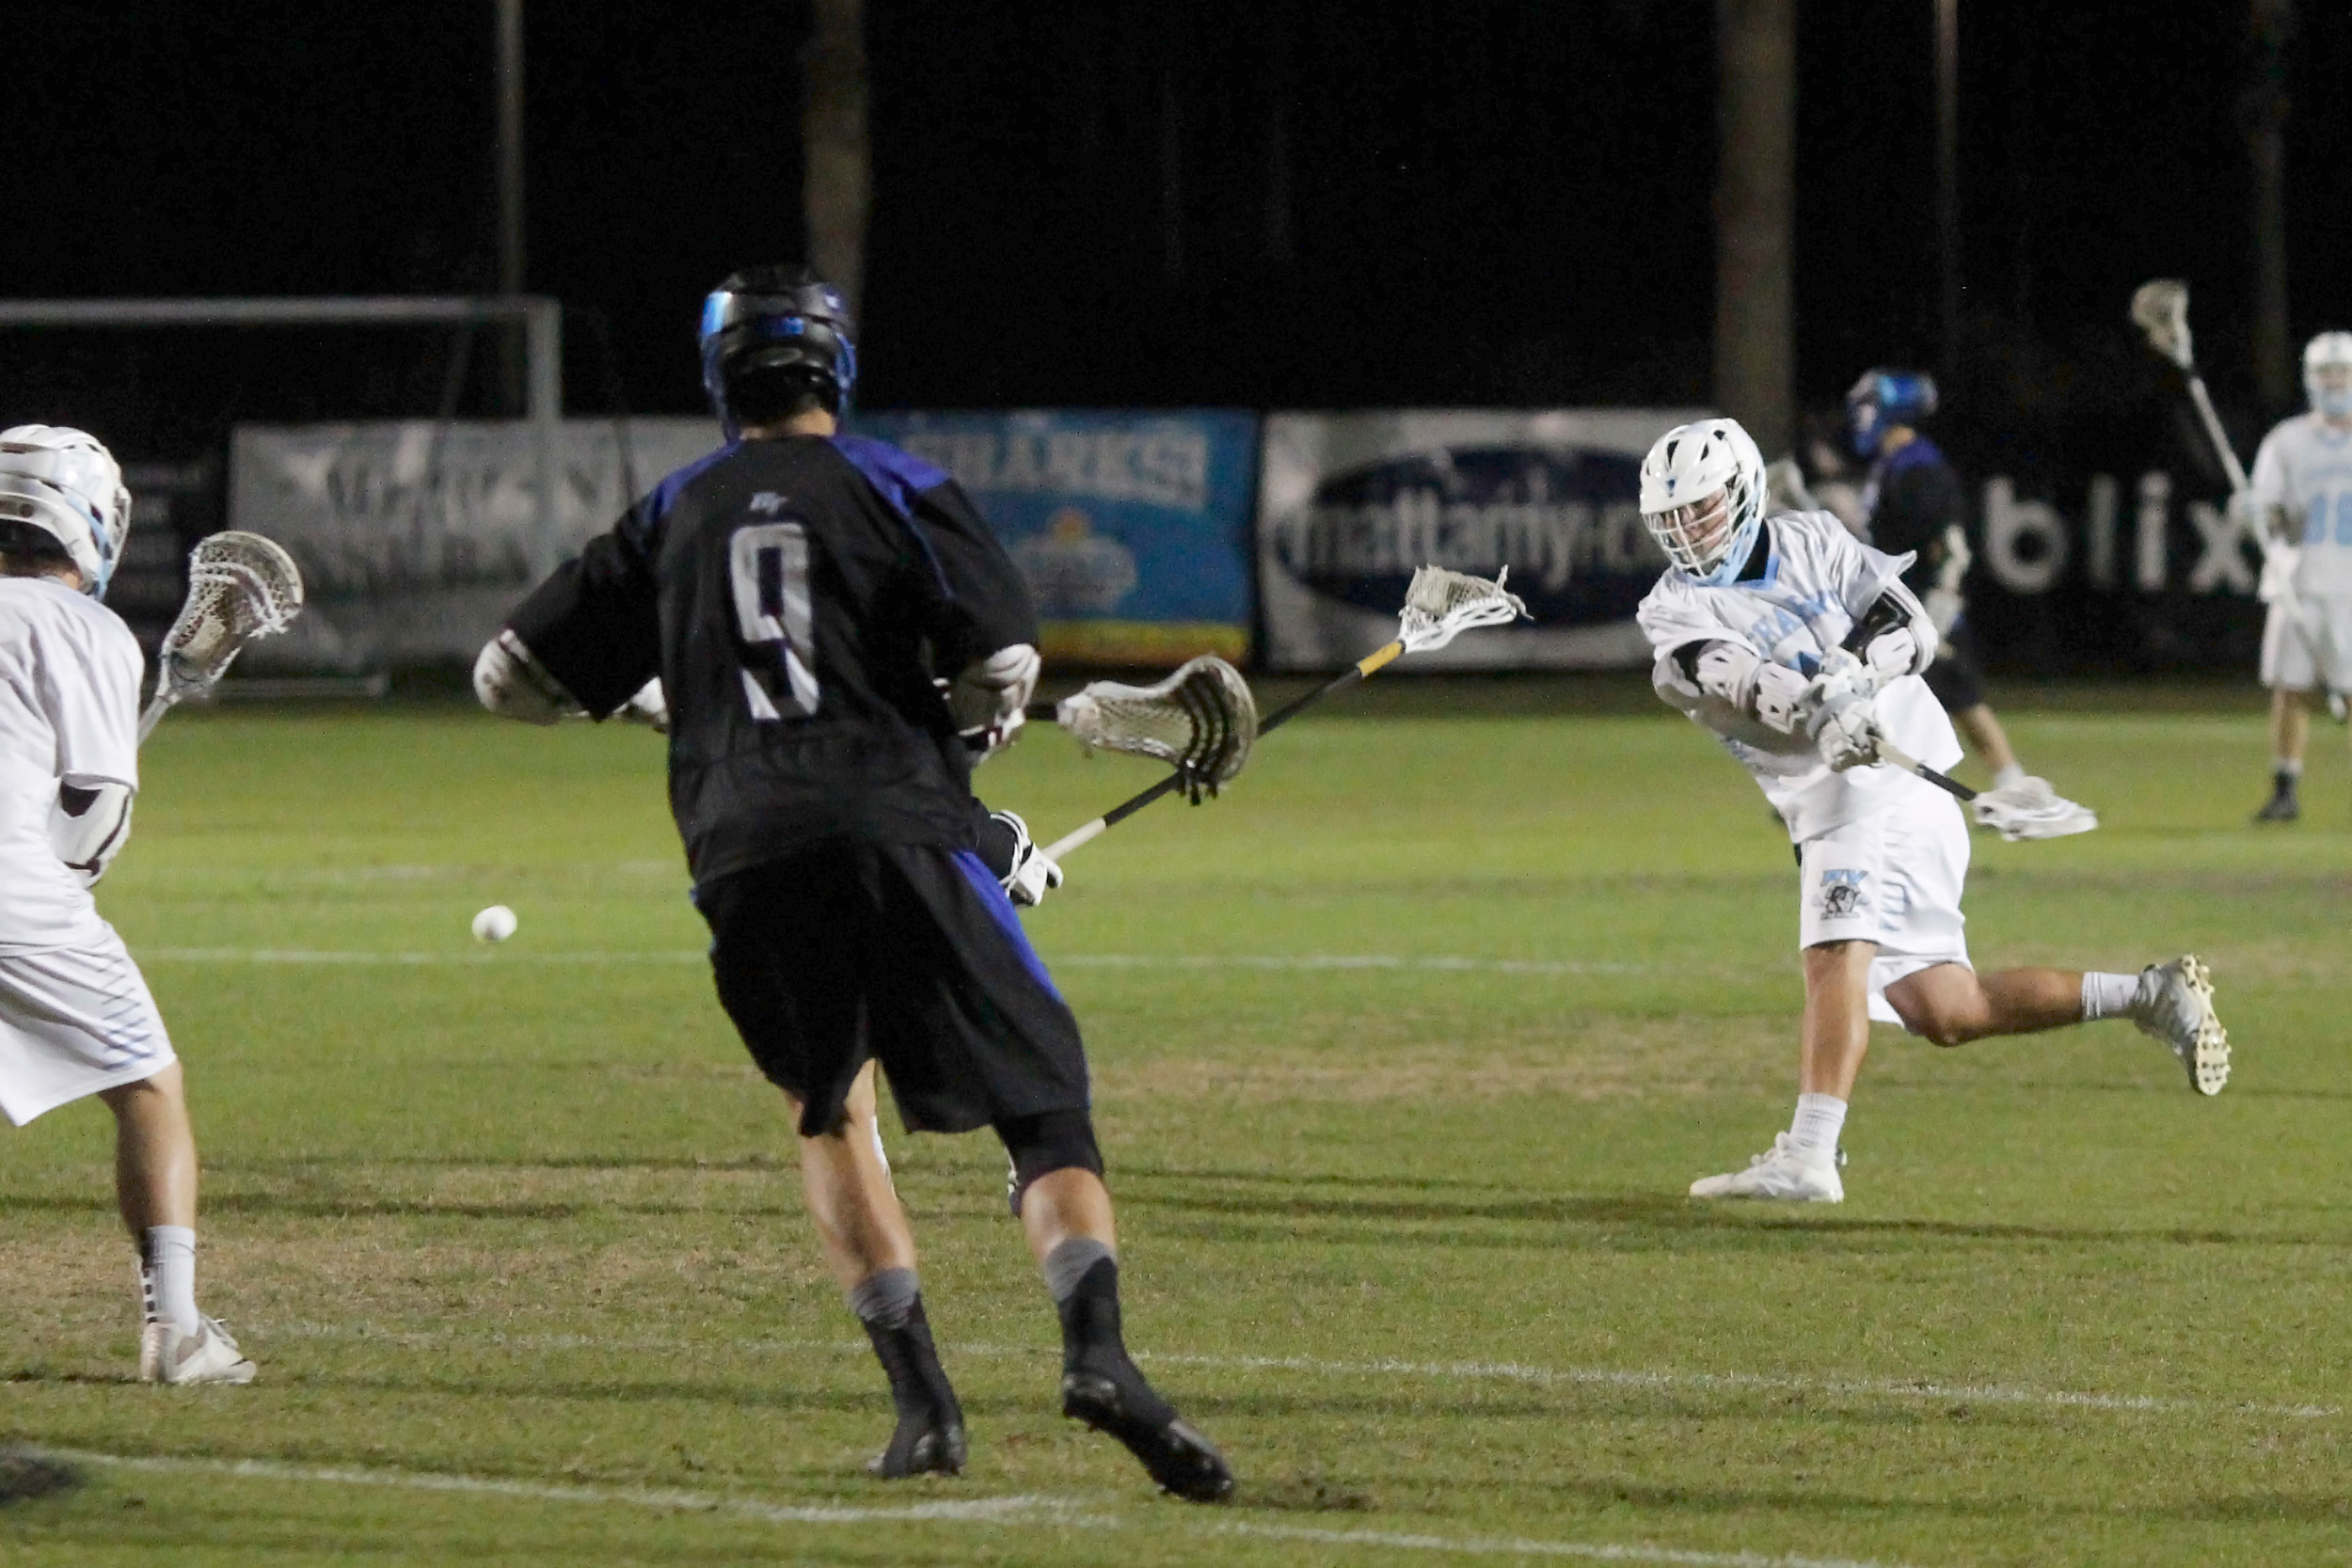 #24 Matt Keeler of the Sharks rips a low shot on the Bartram goal.